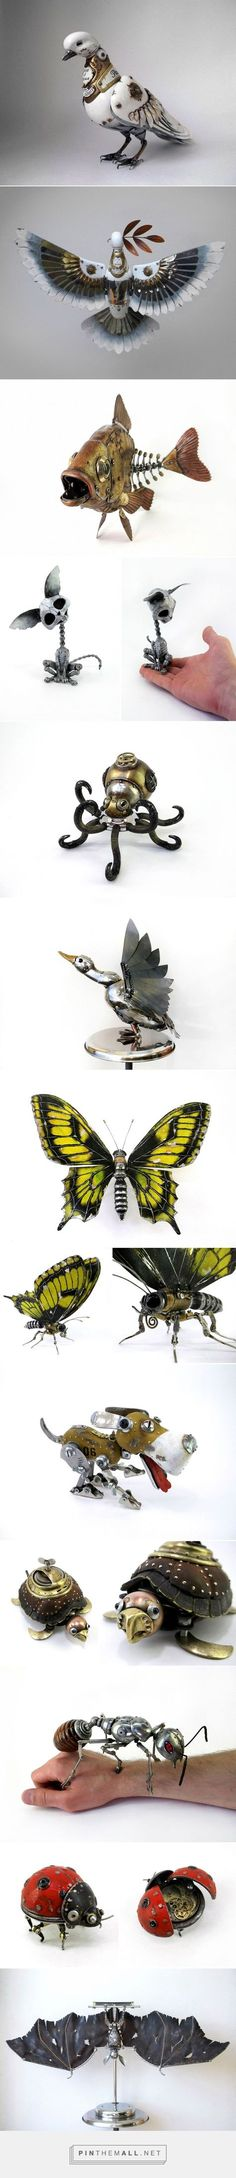 Russian Artist Creates Steampunk Animals From Old Car Parts, Watches And Electronics   Bored Panda... - a grouped images picture - Pin Them All